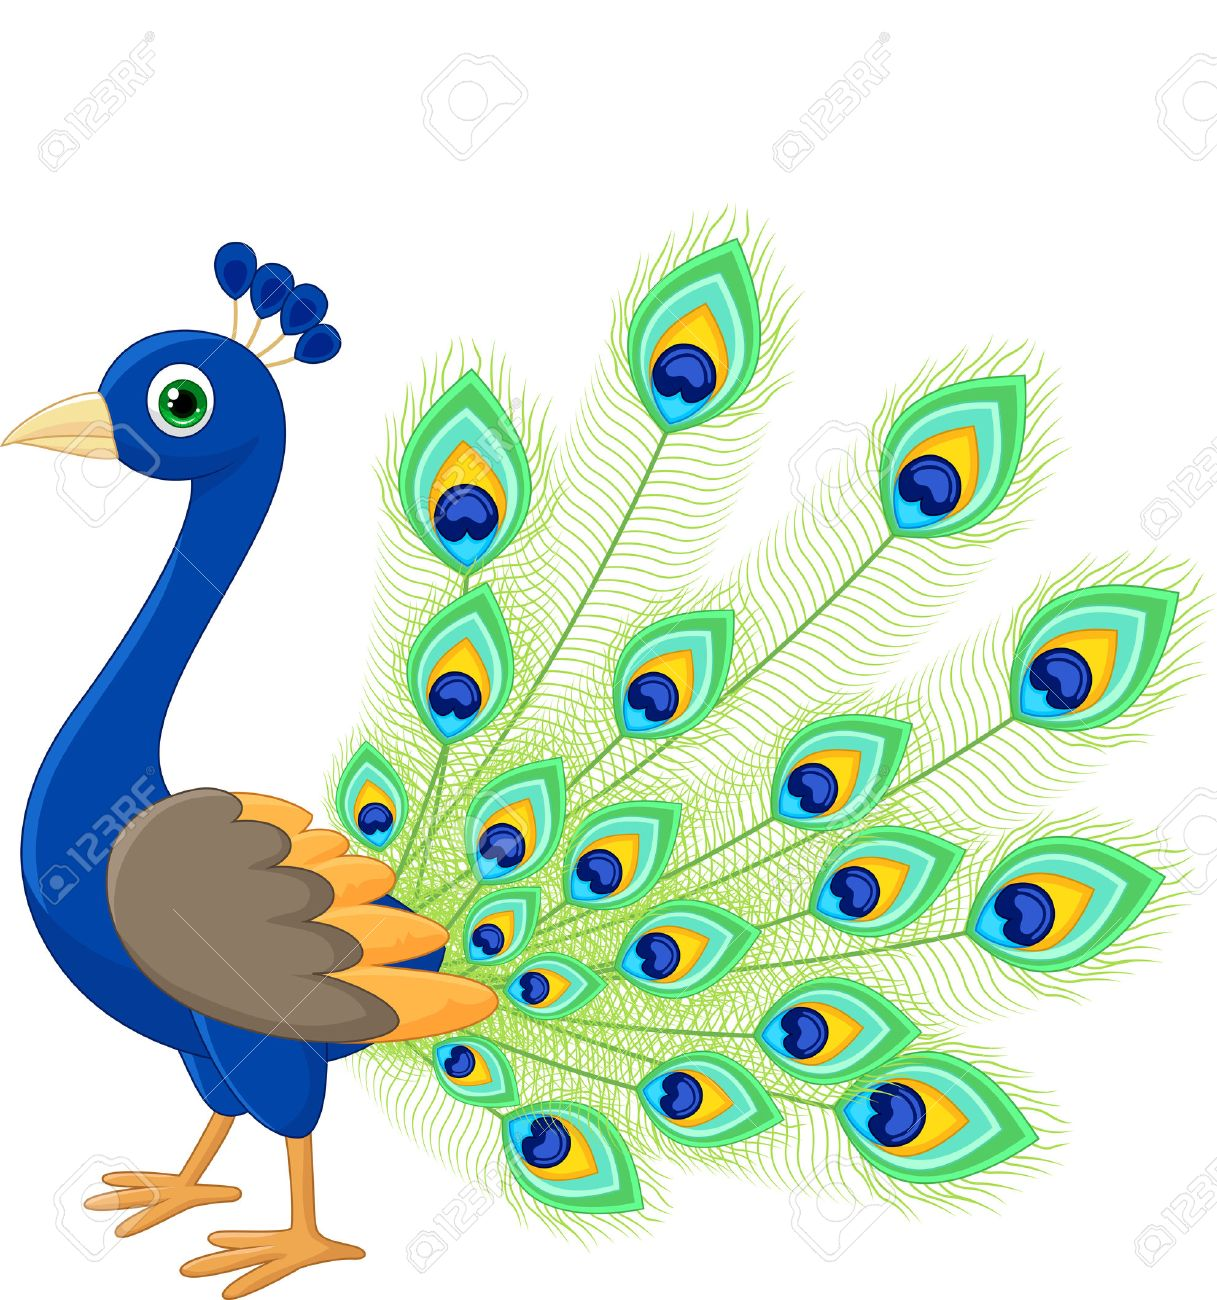 peacock cartoon royalty free cliparts vectors and stock rh 123rf com peacock clipart free peacock clip art images